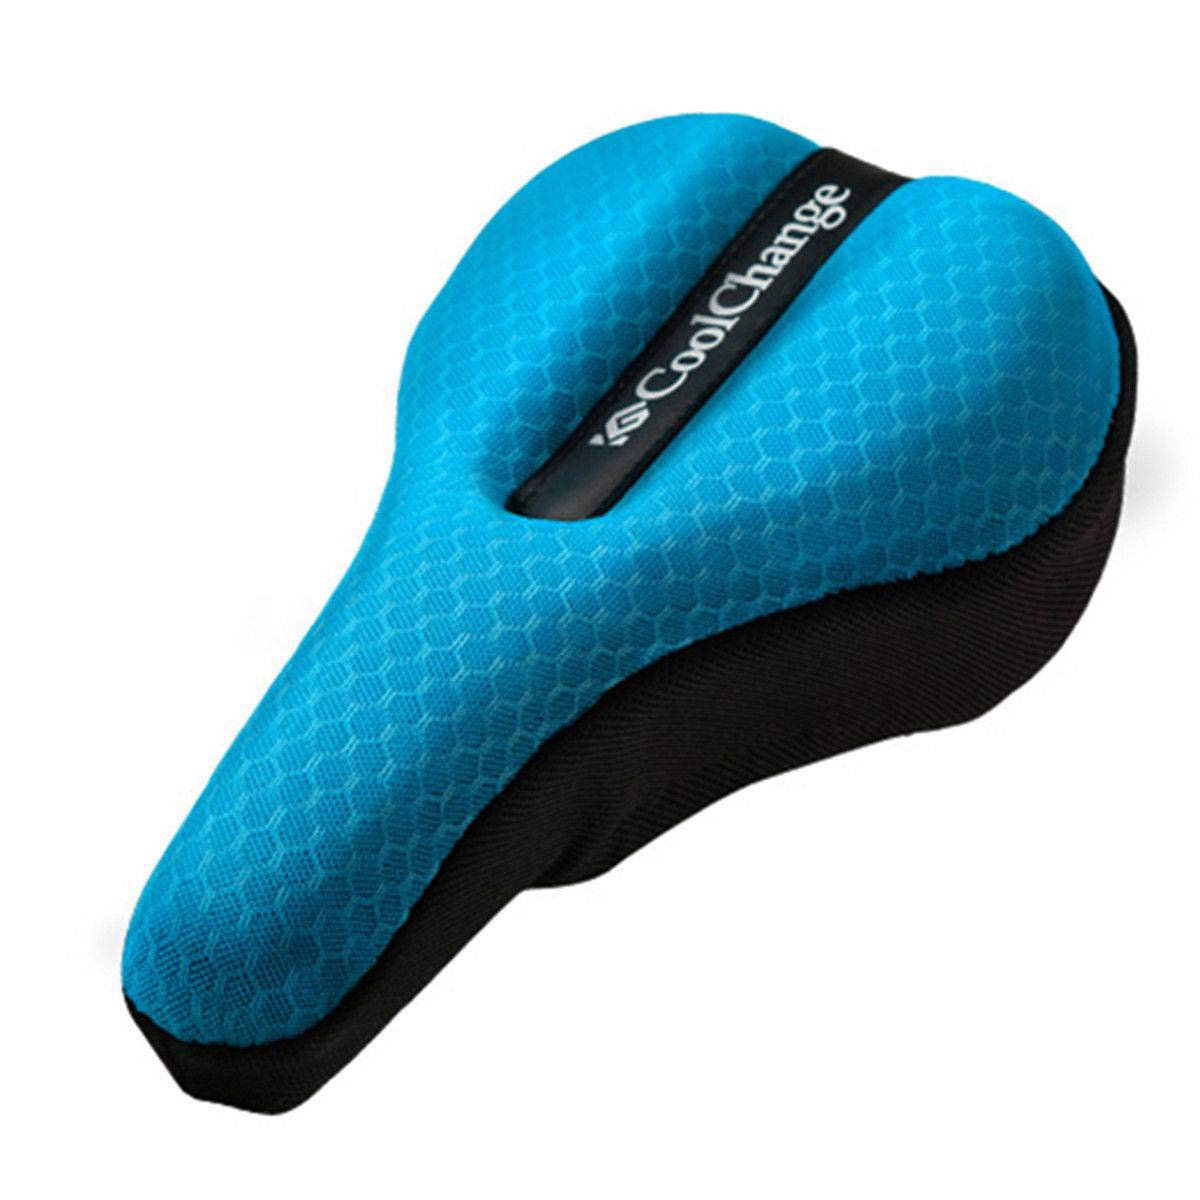 vivpro Silicone Gel Extra Soft Bicycle Bike MTB Saddle Cushion Seat Cover Pad Comfort